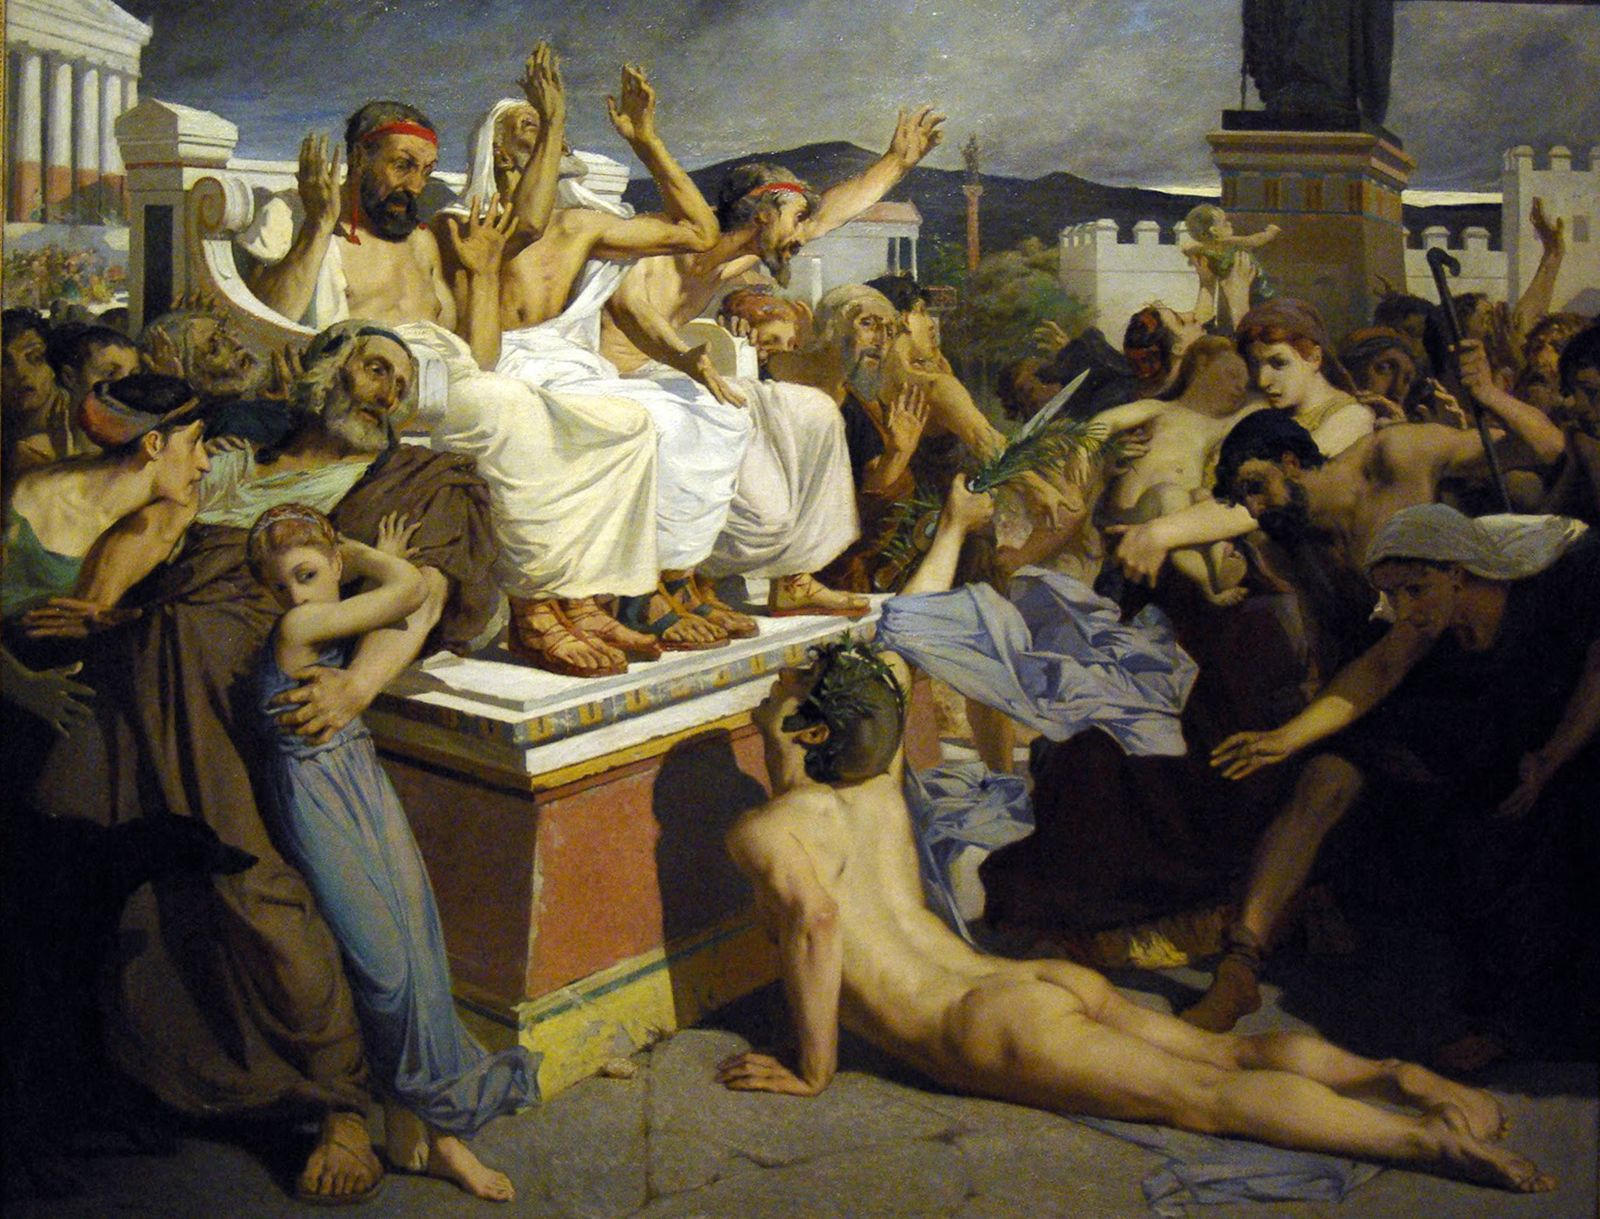 Pheidippides giving word of victory after the Battle of Marathon by Merson, Luc-Olivier (1846-1920)